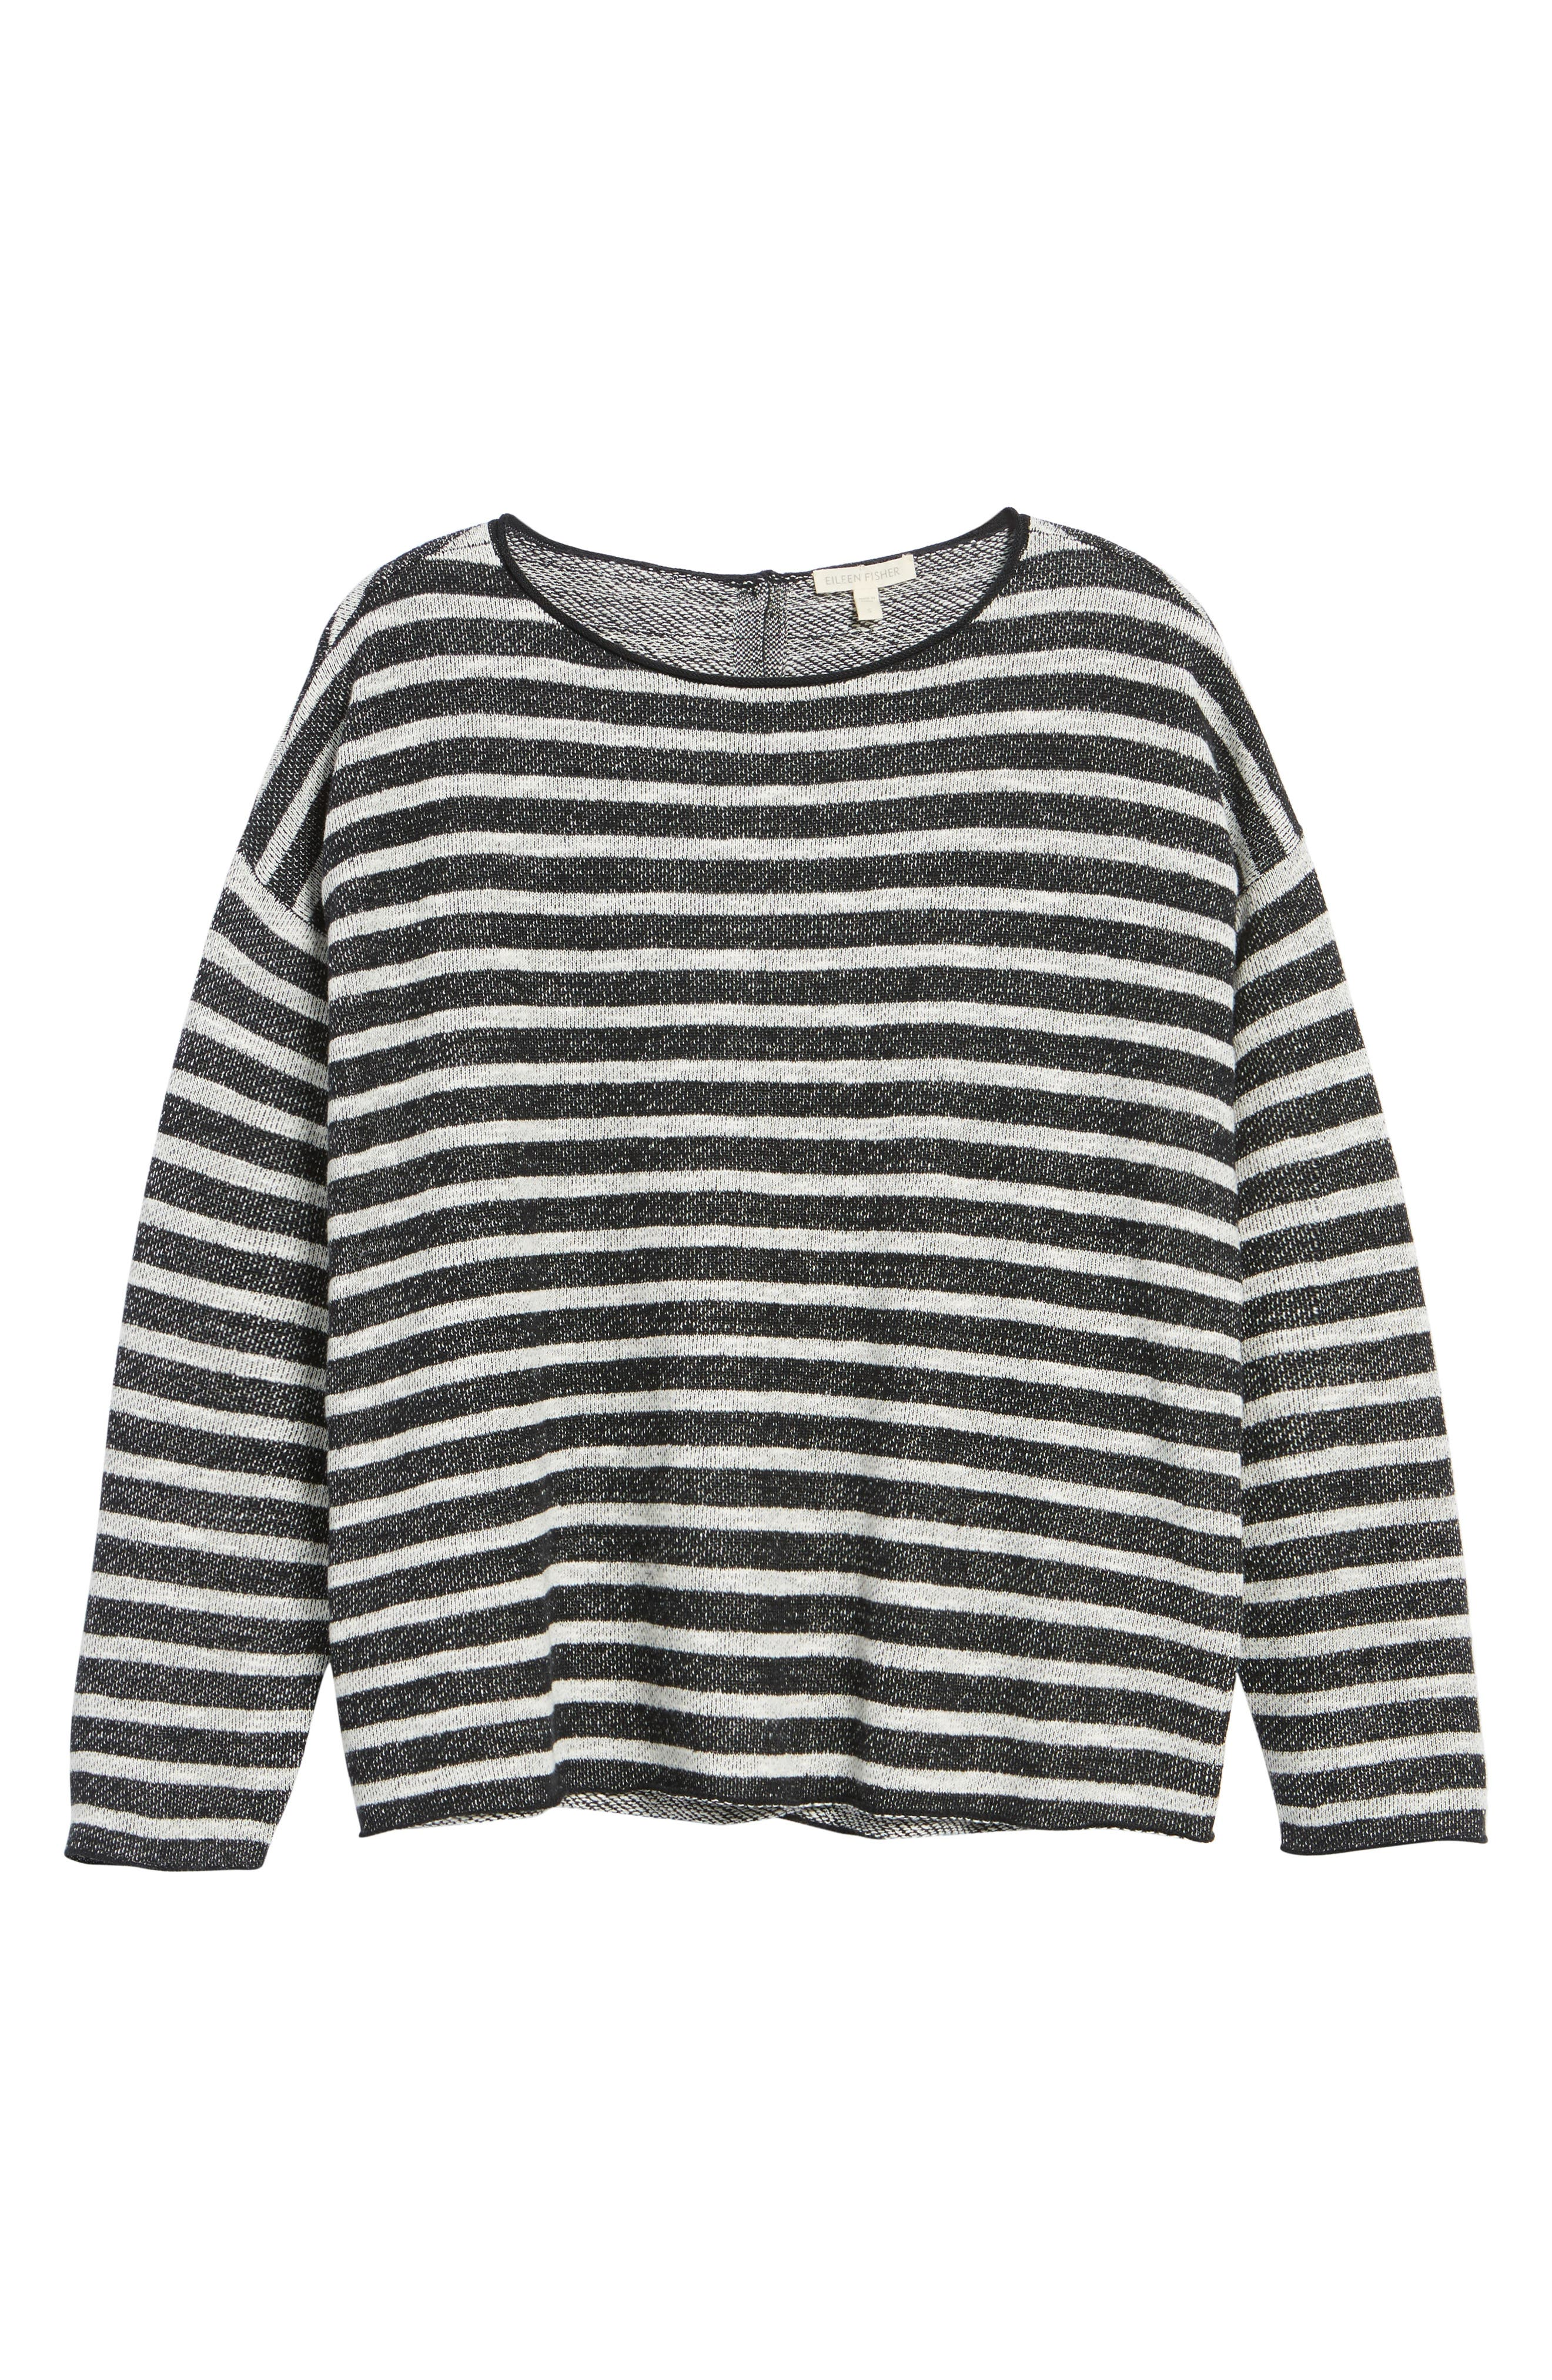 Stripe Organic Linen & Cotton Sweater,                             Alternate thumbnail 7, color,                             Black/ Soft White